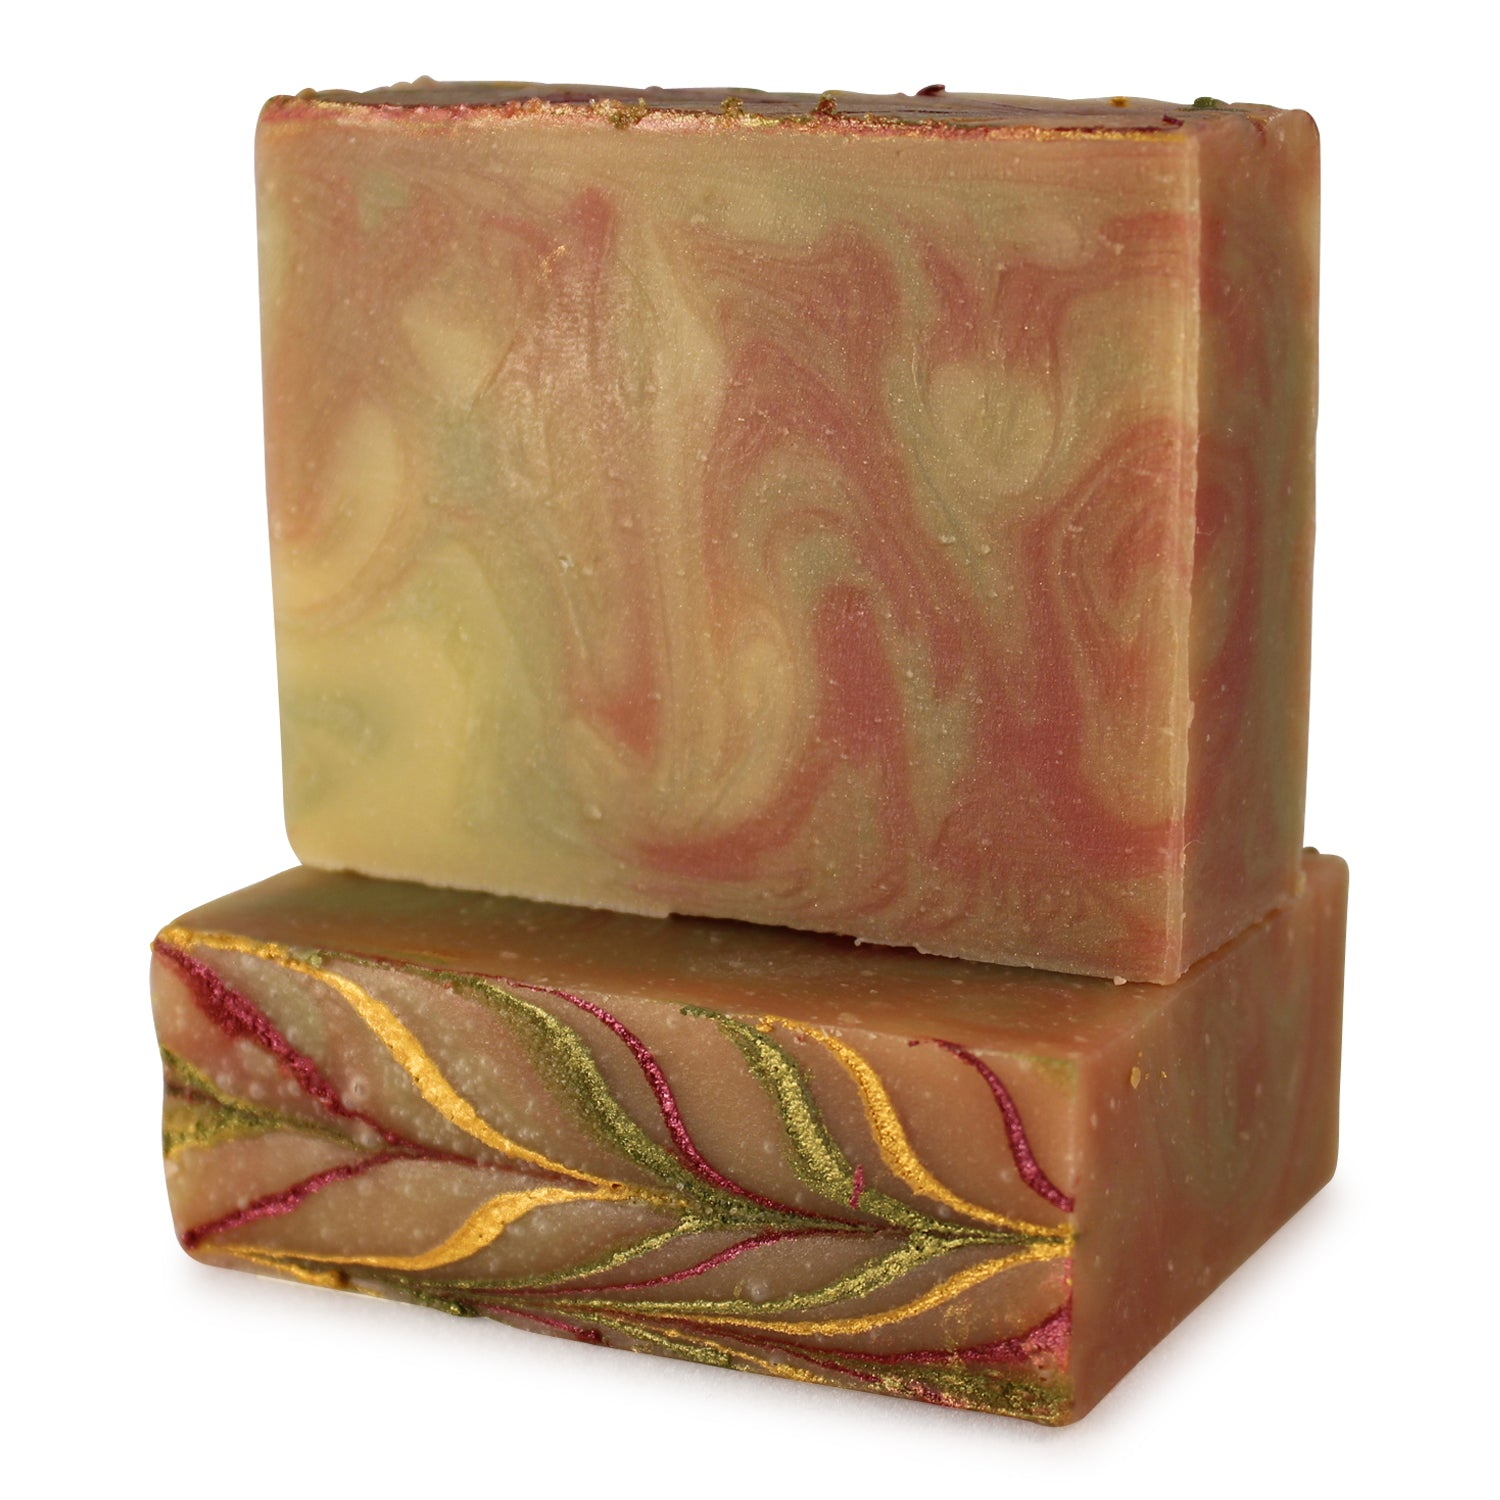 Harvest Soap | apple, cinnamon, orange, clove + nutmeg - Canard Labs  handcrafted, all natural bar soap made in Oregon. Bar soaps and bath body products made with quality ingredients.